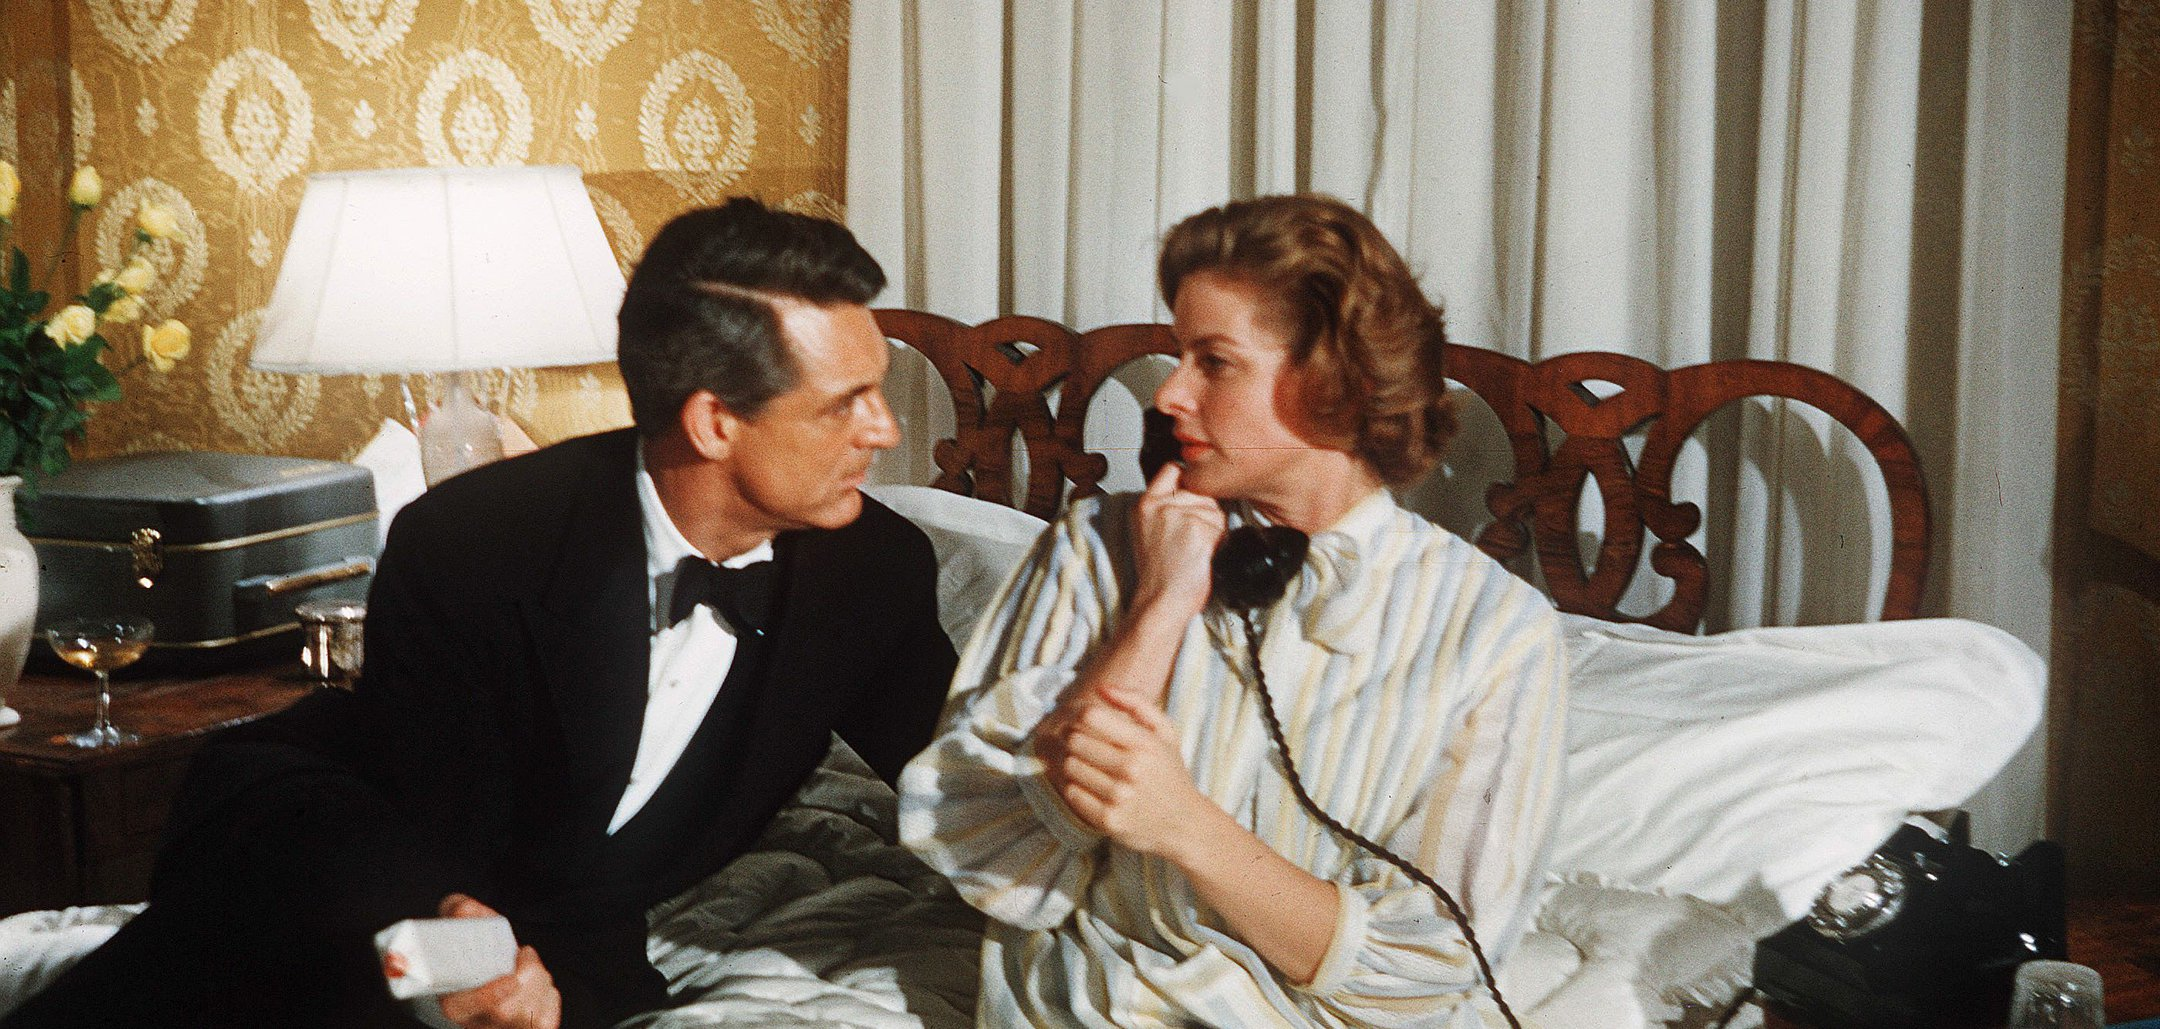 Cary Grant and Ingrid Bergman sit on a bed and look into each others' eyes in a still from 'Indiscreet' (1958)